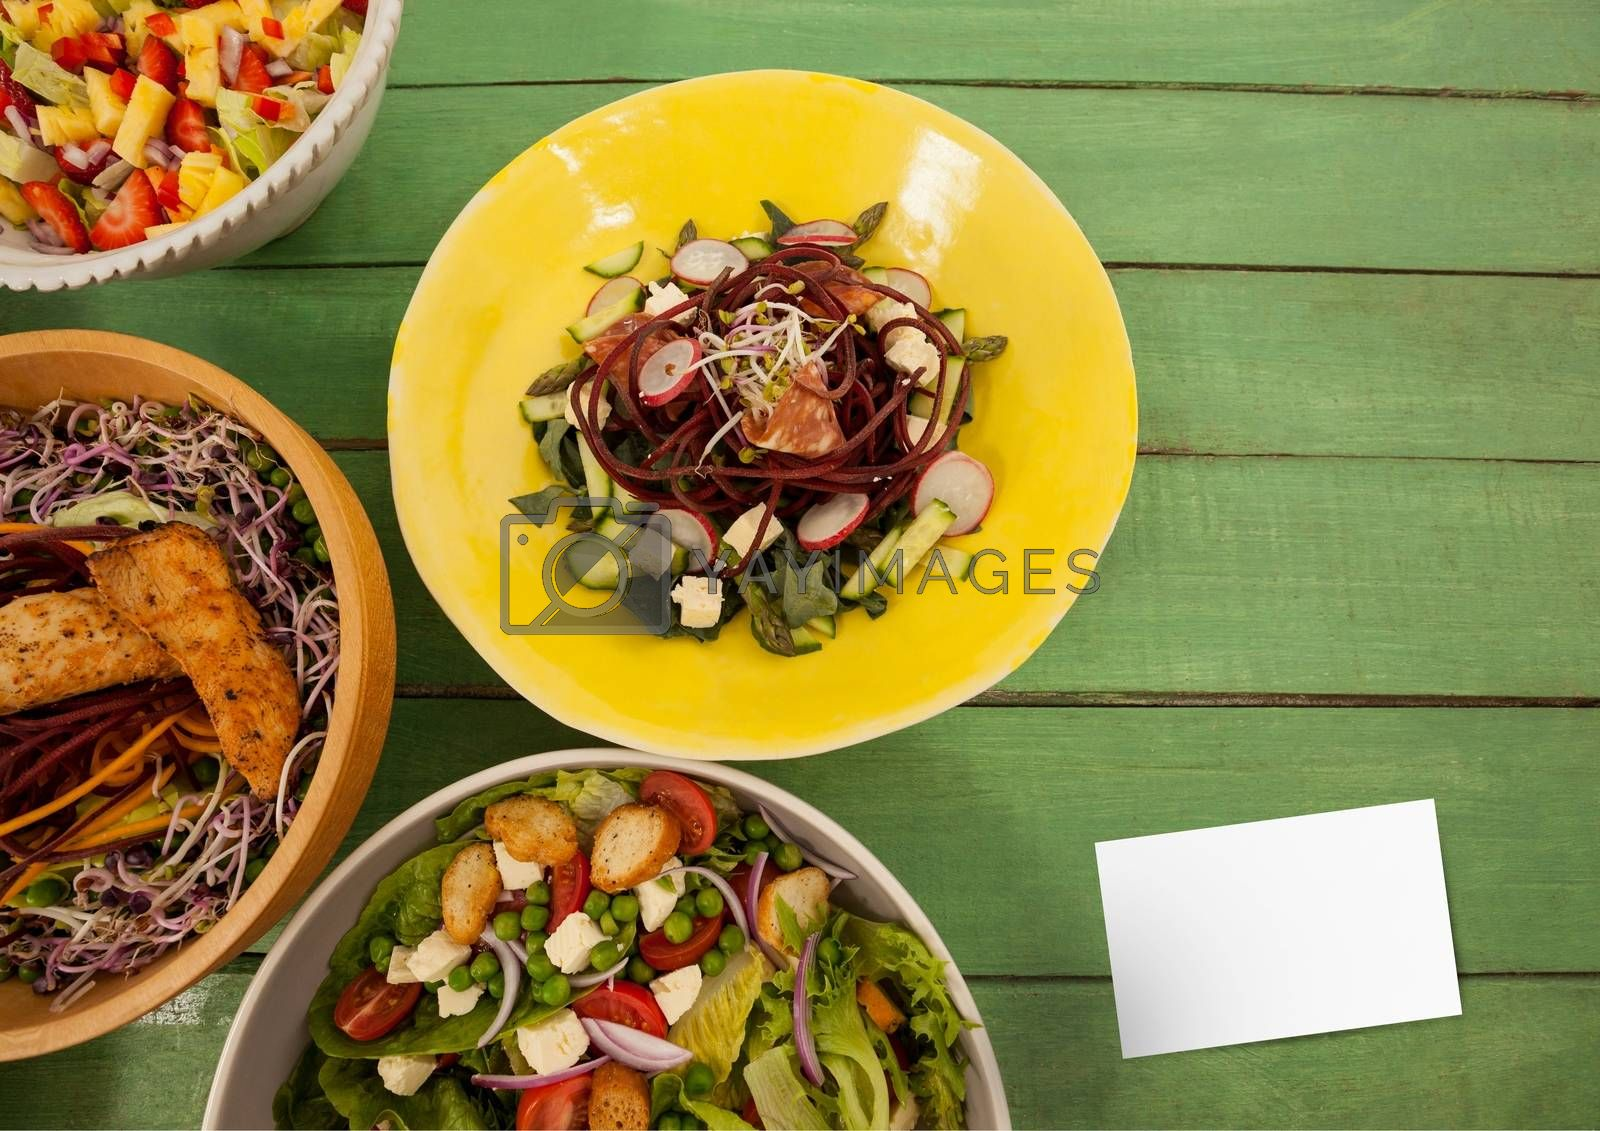 Digital composite of Bussiness card on green wooden desk with food